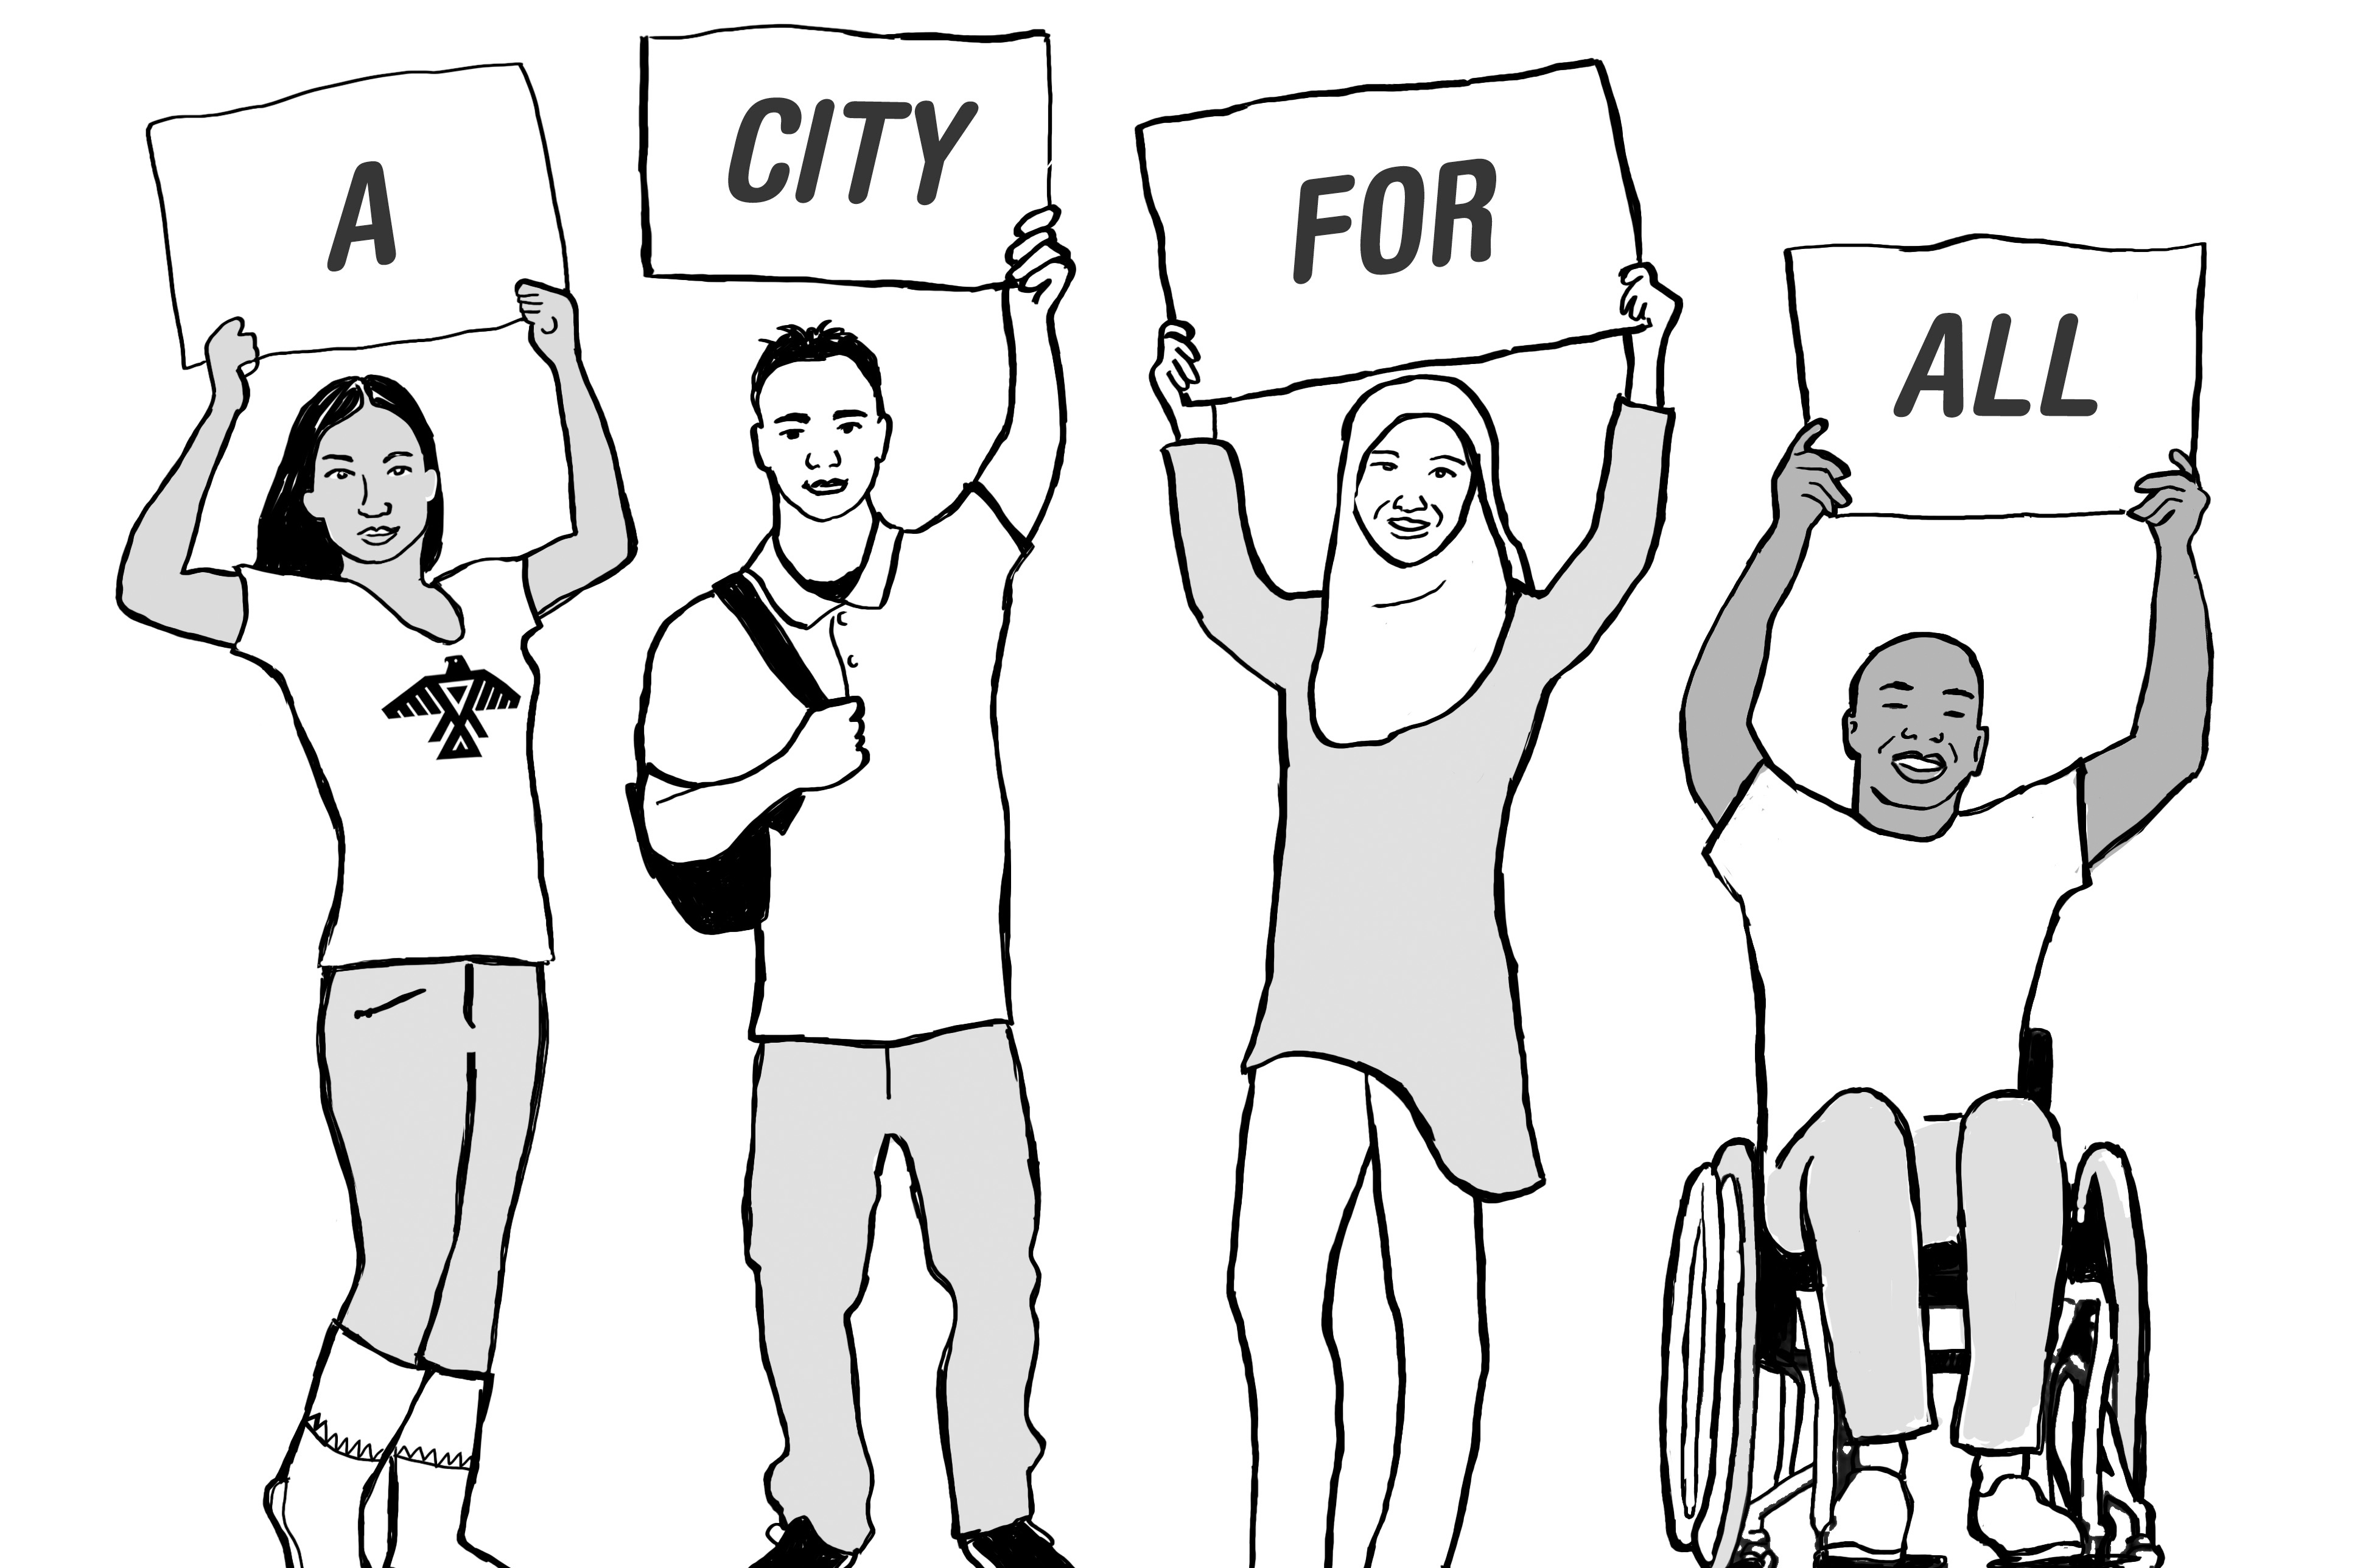 a-city-for-all-group-e.png